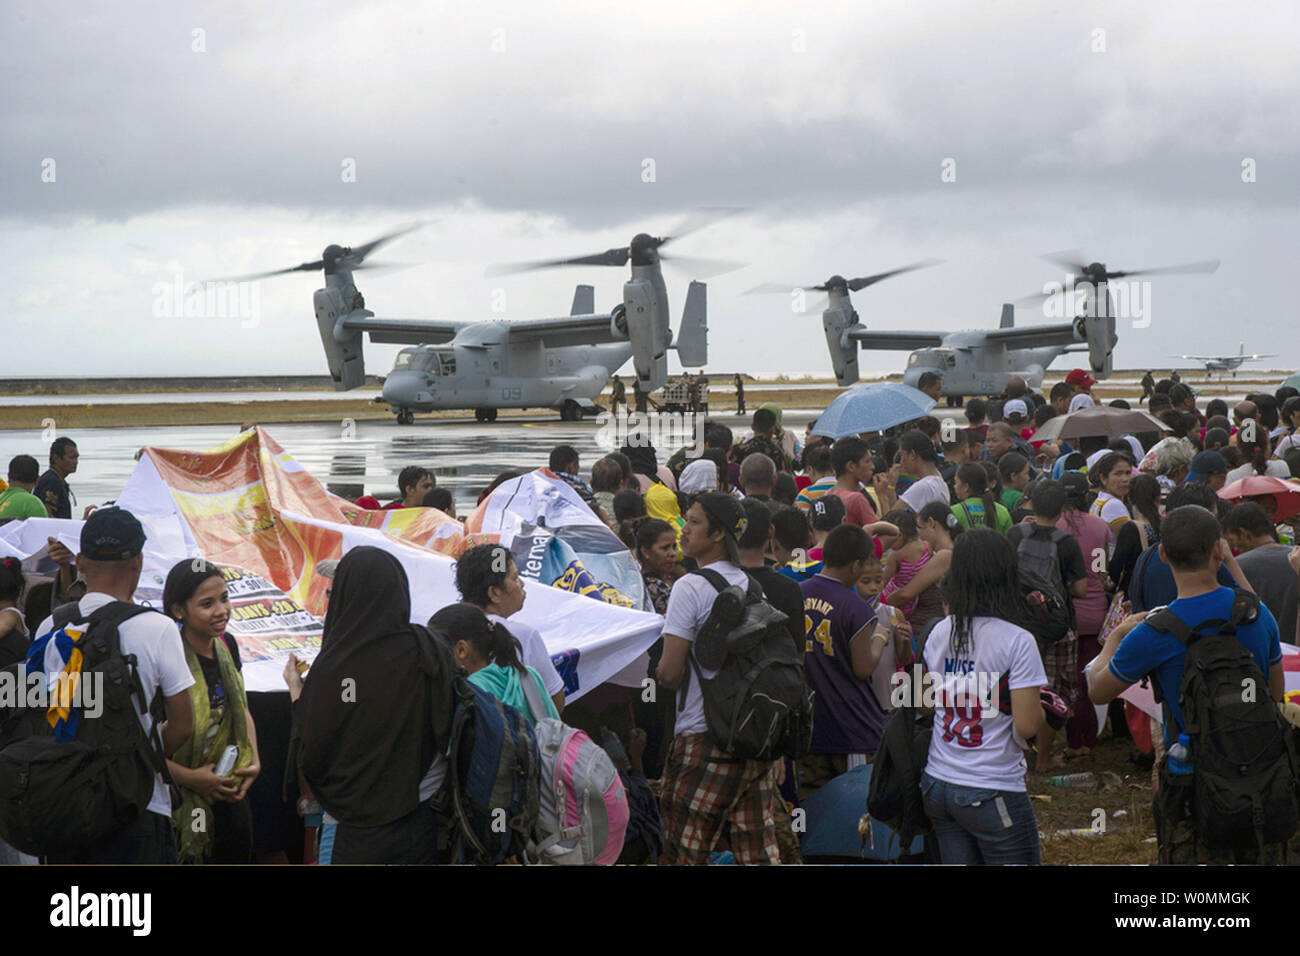 Supplies are loaded onto U.S. Marine Corps MV-22 Osprey aircraft as the U.S. military assist in relief efforts in the wake of Typhoon Haiyan, in Tacloban, Leyte province, Philippines, Nov. 14, 2013. U.S. Military personnel are assisting the Philippine Armed Forces in providing humanitarian assistance and disaster relief to affected areas throughout the Philippines following the deadly typhoon that left 2,357 dead.  UPI/Ricardo R. Guzman/US Navy Stock Photo